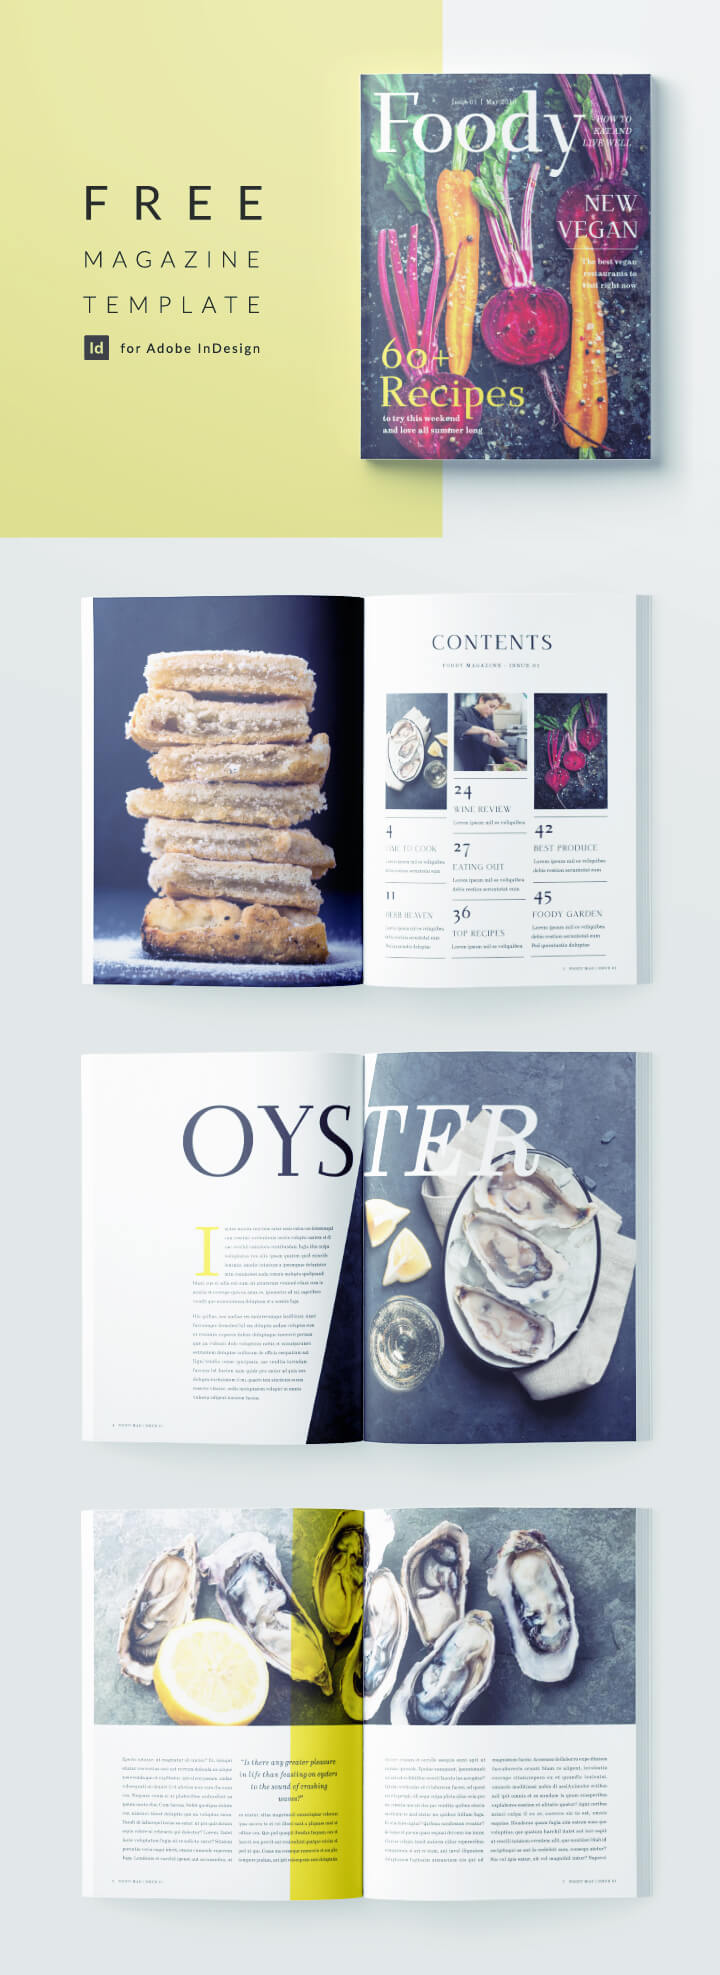 indesign cs5 templates free download - stylish food magazine template for indesign free download